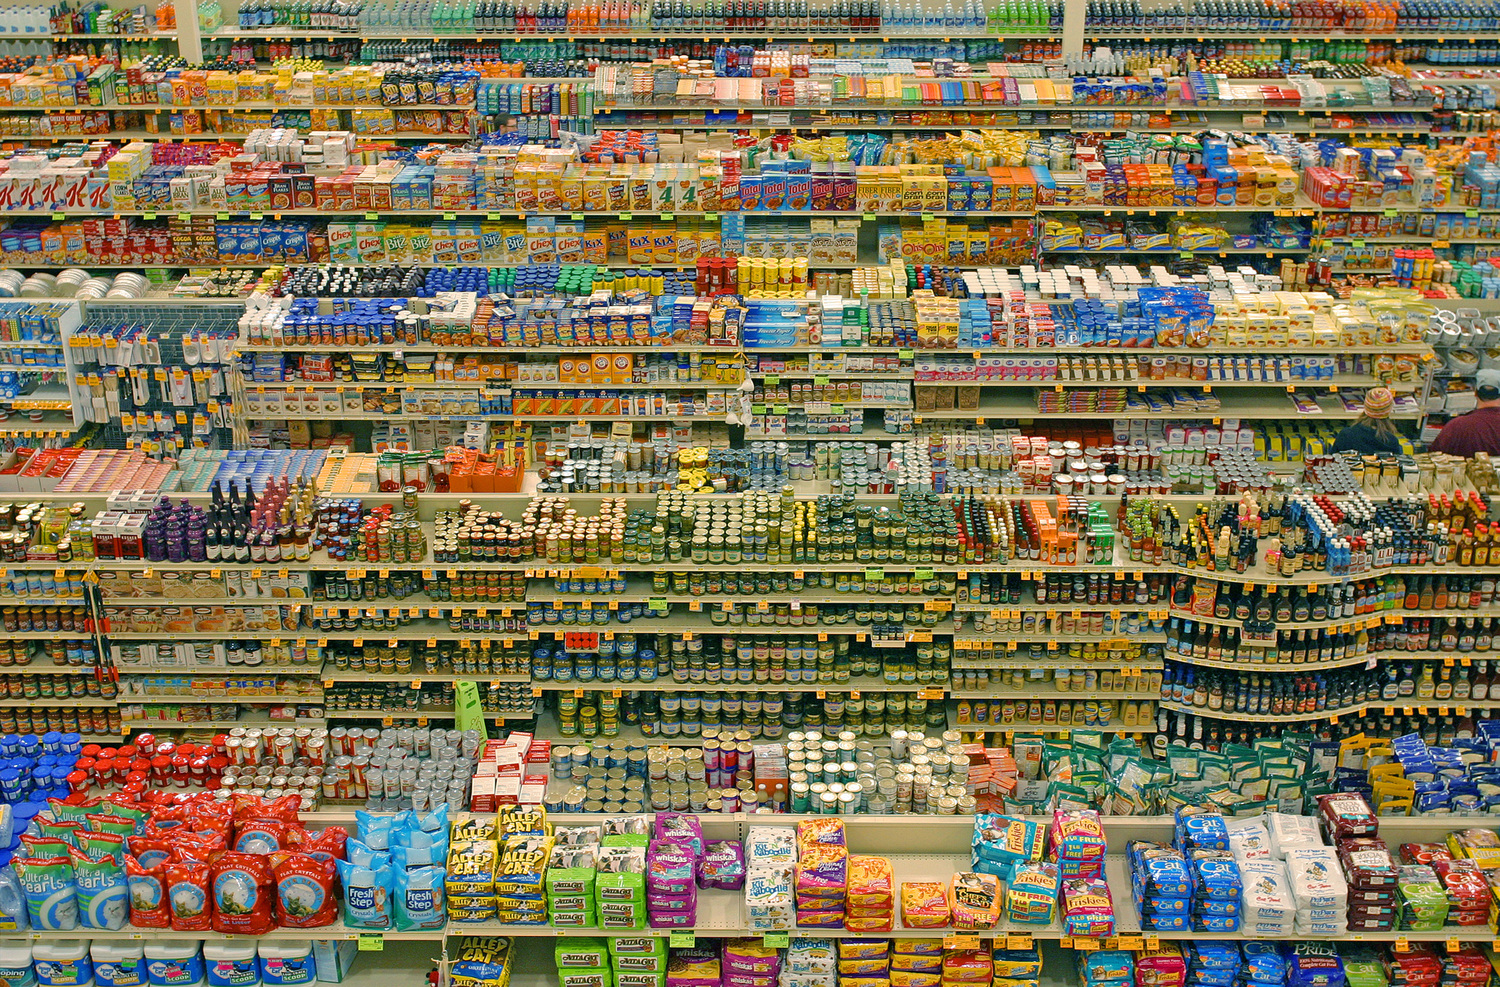 Stacked supermarket shelves